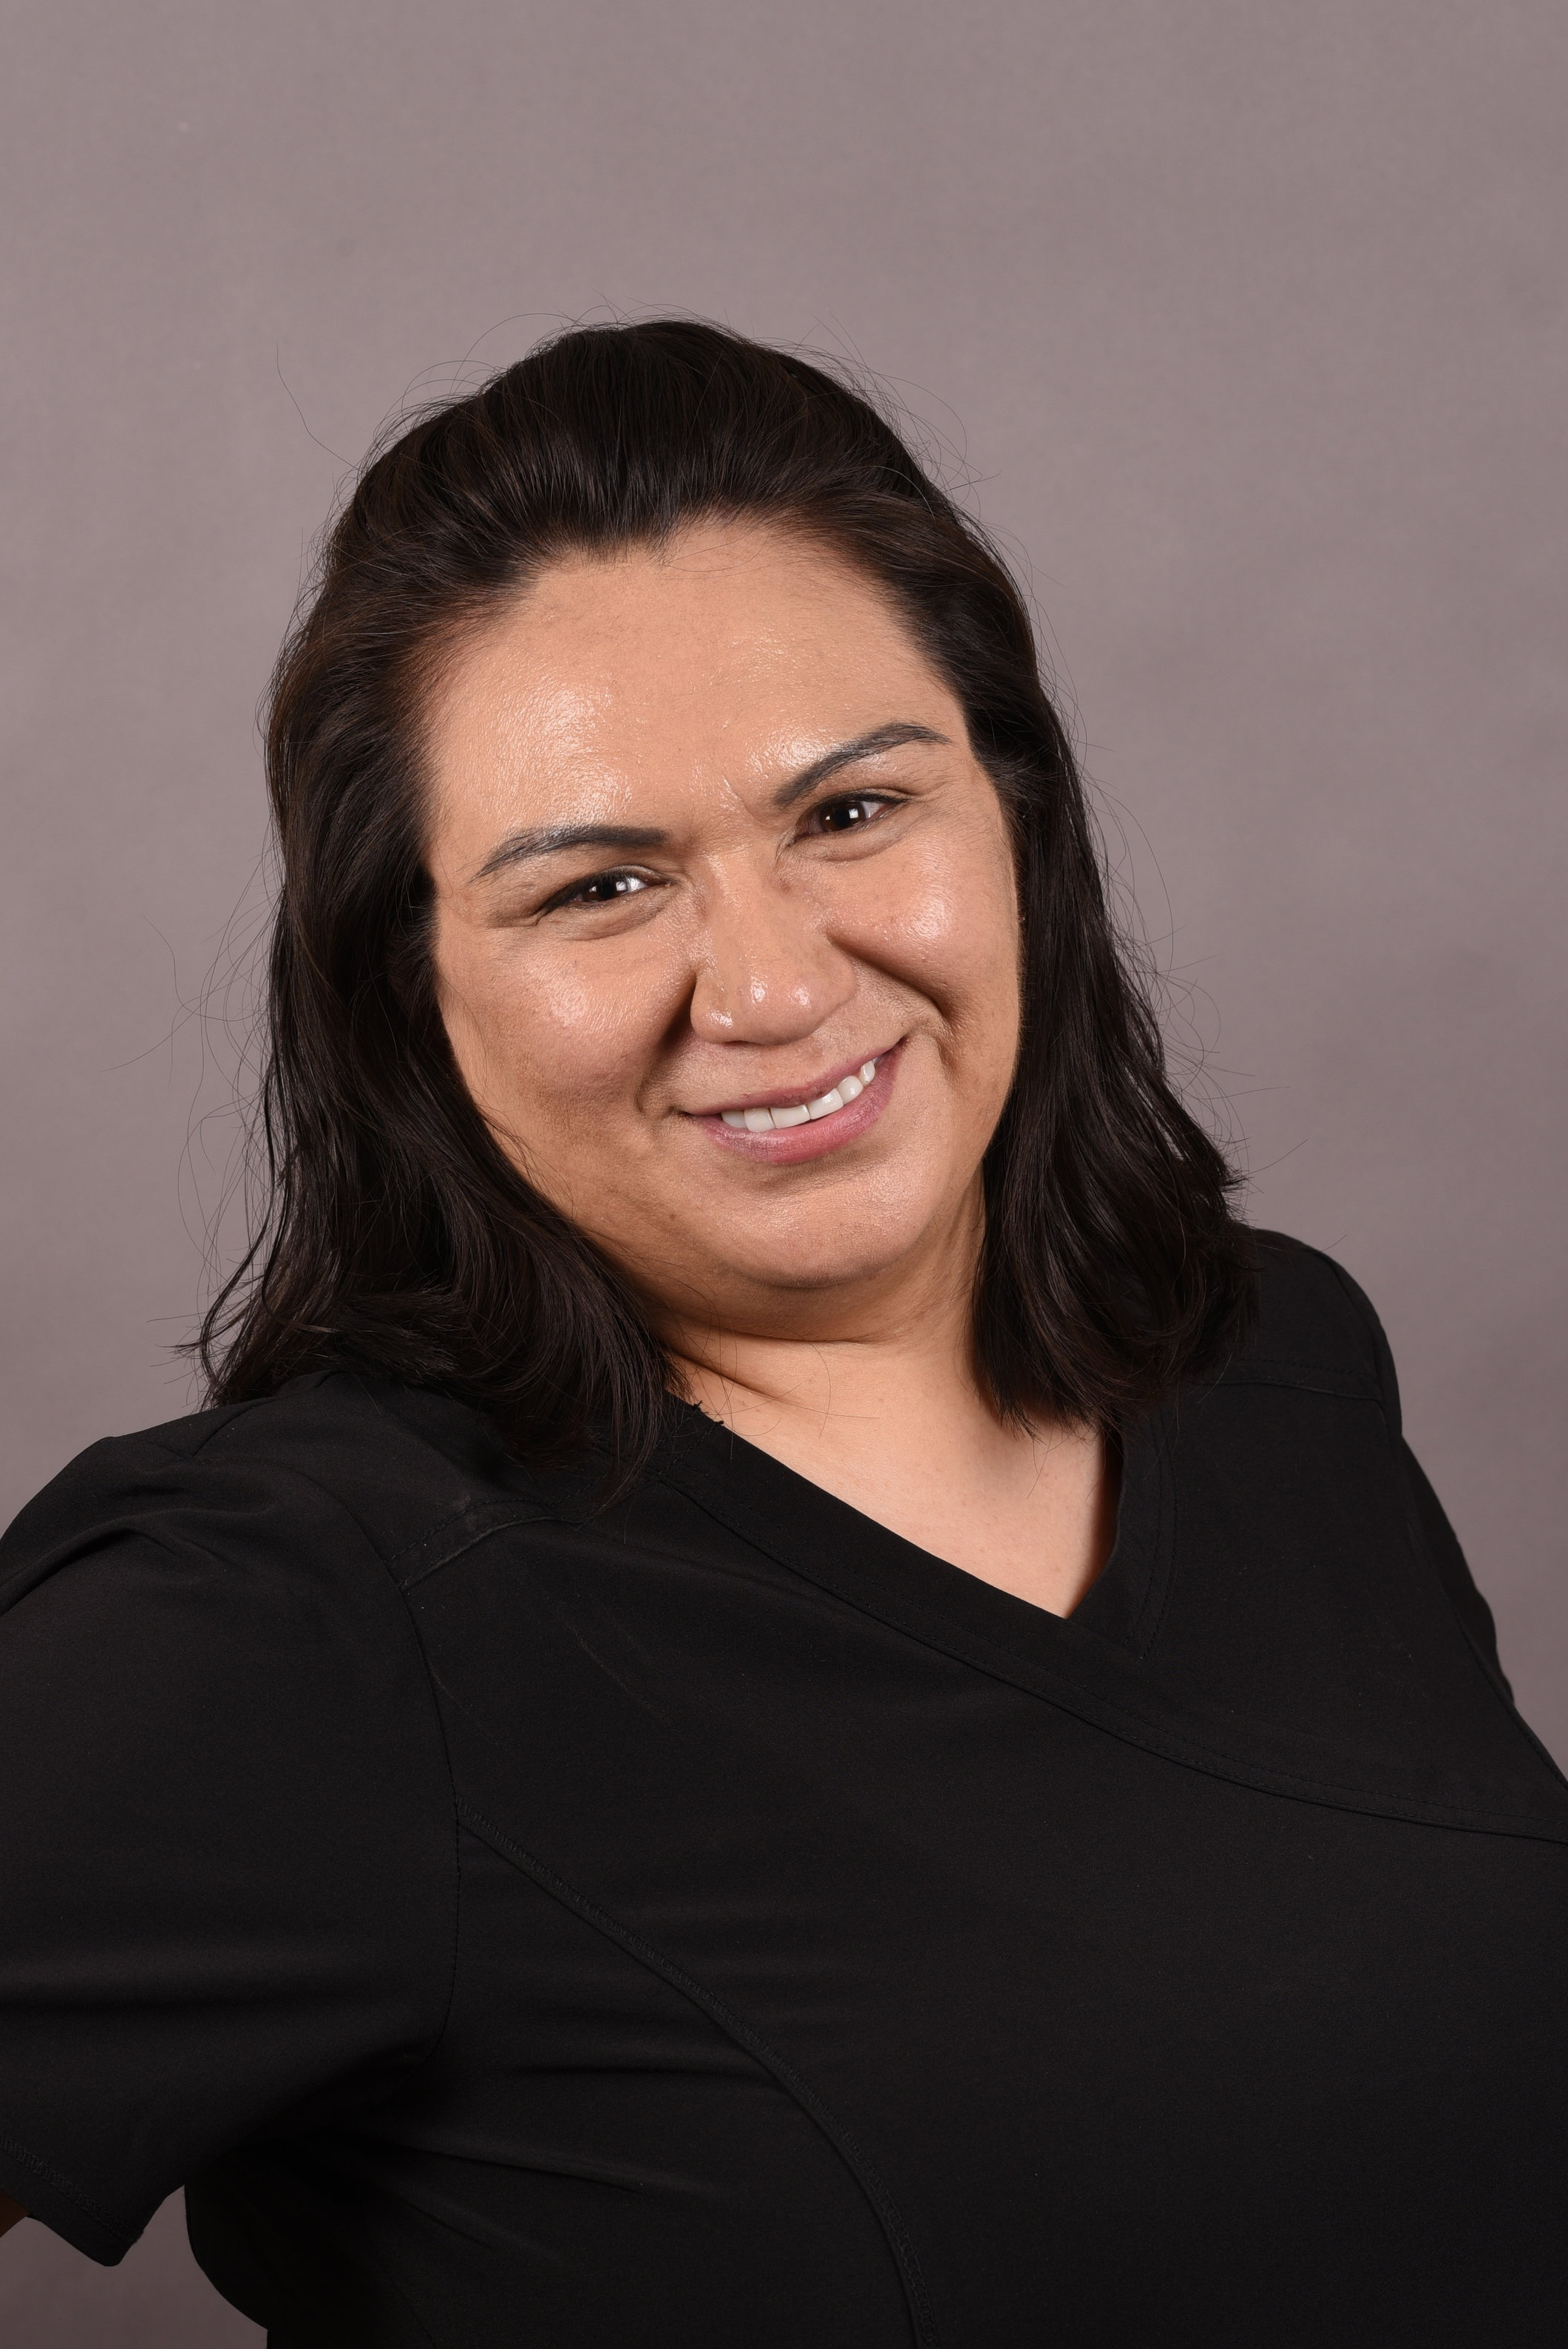 Marie - Patient CoordinatorBorn and raised in Fort Worth, Marie joined our practice in June 2019. She obtained her registered dental assisting certification from ATI and has over 15 years of experience in the dental field. While you may see welcome you when you walk in, don't be surprised if you see her assisting Dr. Gonzalez and Dr. Salazar in the back. She enjoys developing strong relationships with patients and referring doctors to better serve our practice.Marie has been married to her husband, Phillip, for 8 years and they have a beautiful daughter named Esther. Her hobbies include baking, Netflix and spending time with her family.